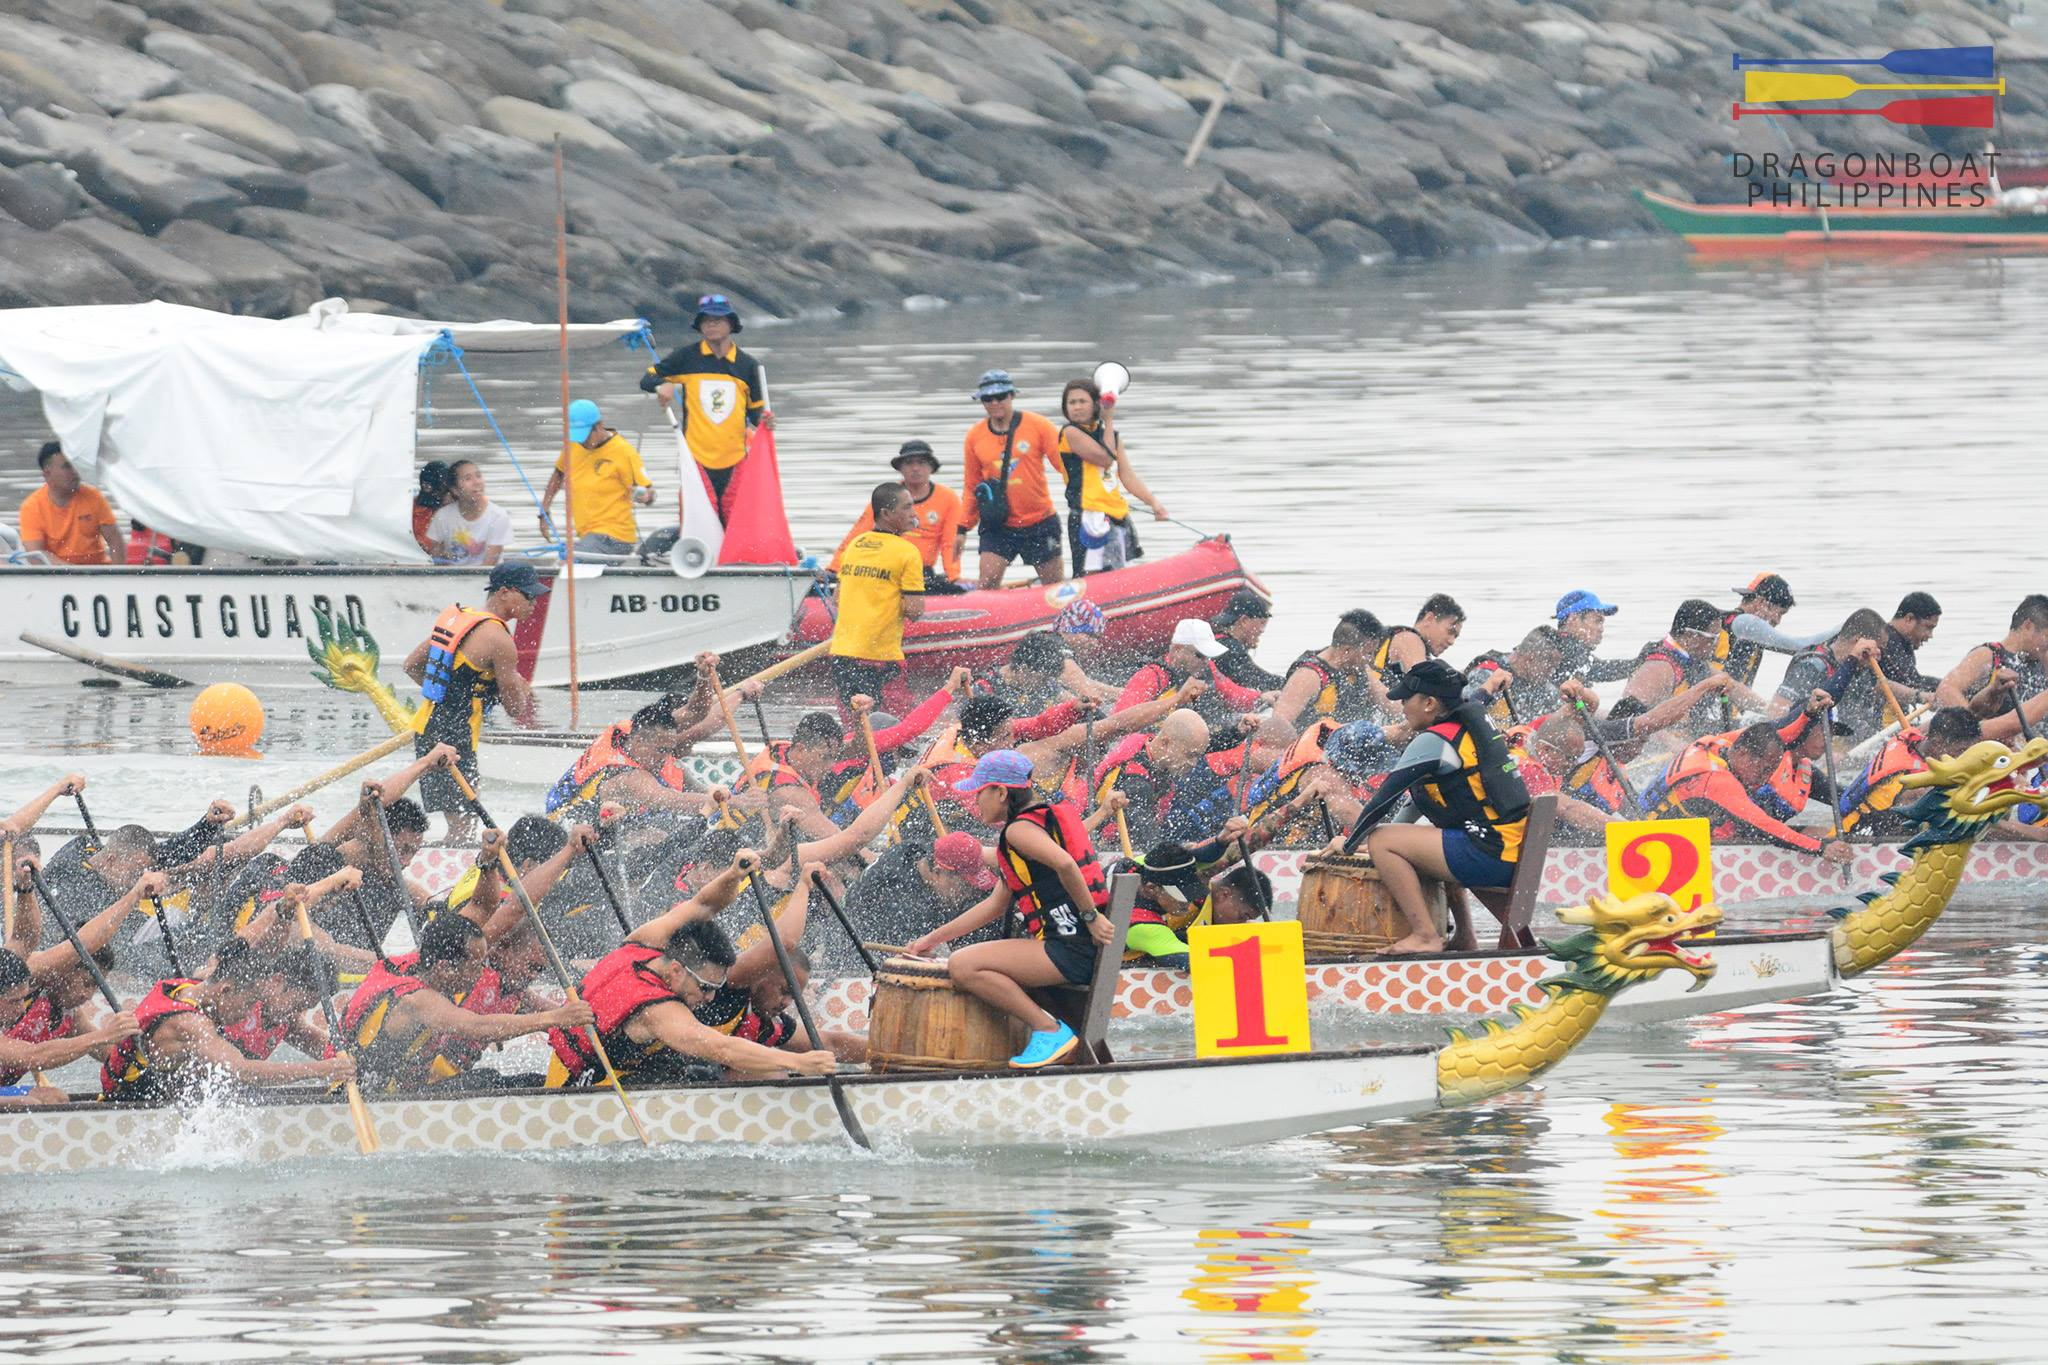 Pinoy dragon boat team eyes rematch with Russians